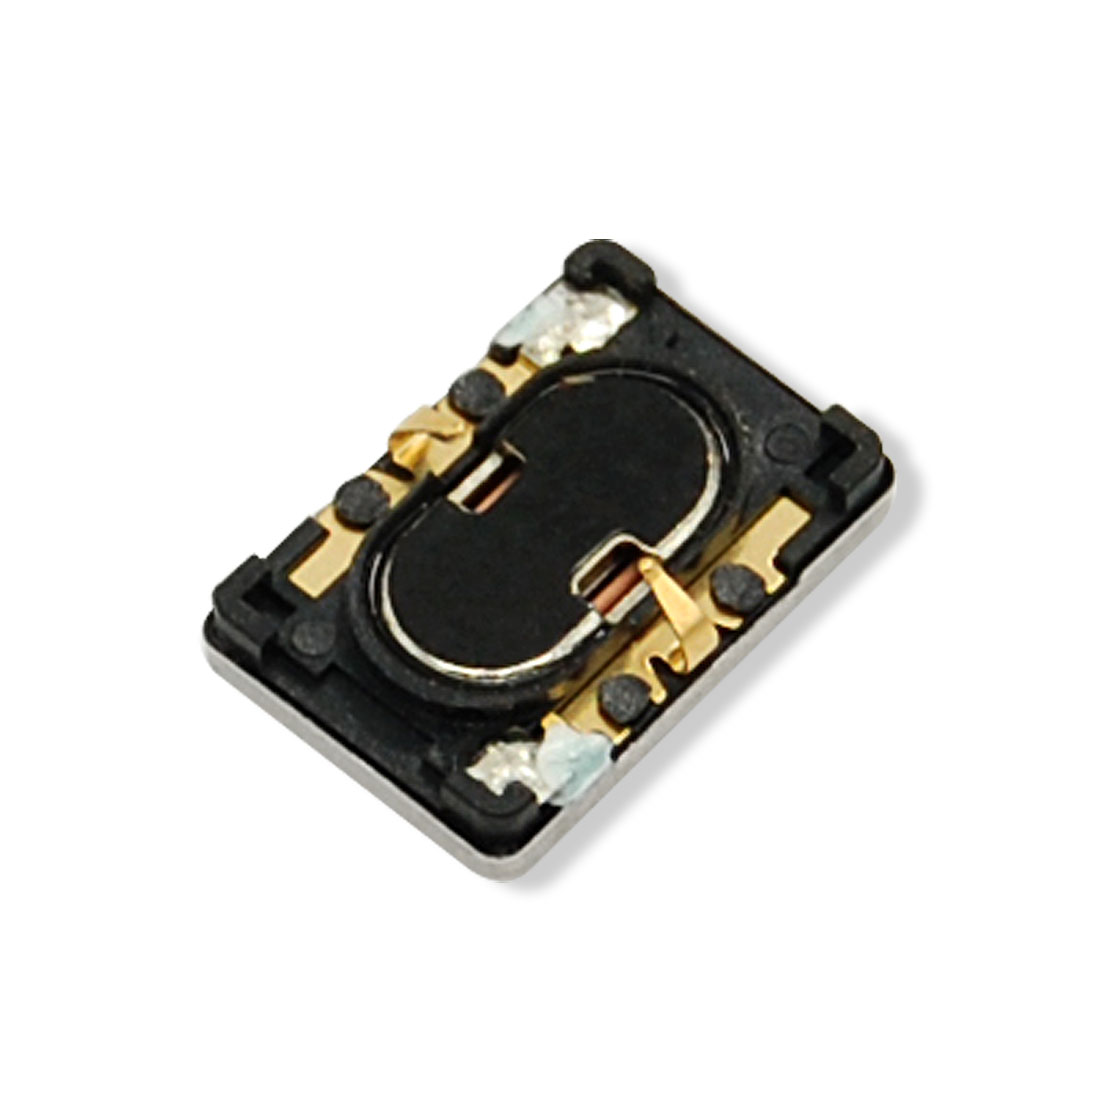 Mobile Replacement Earpiece Receiver for Nokia N78 6300